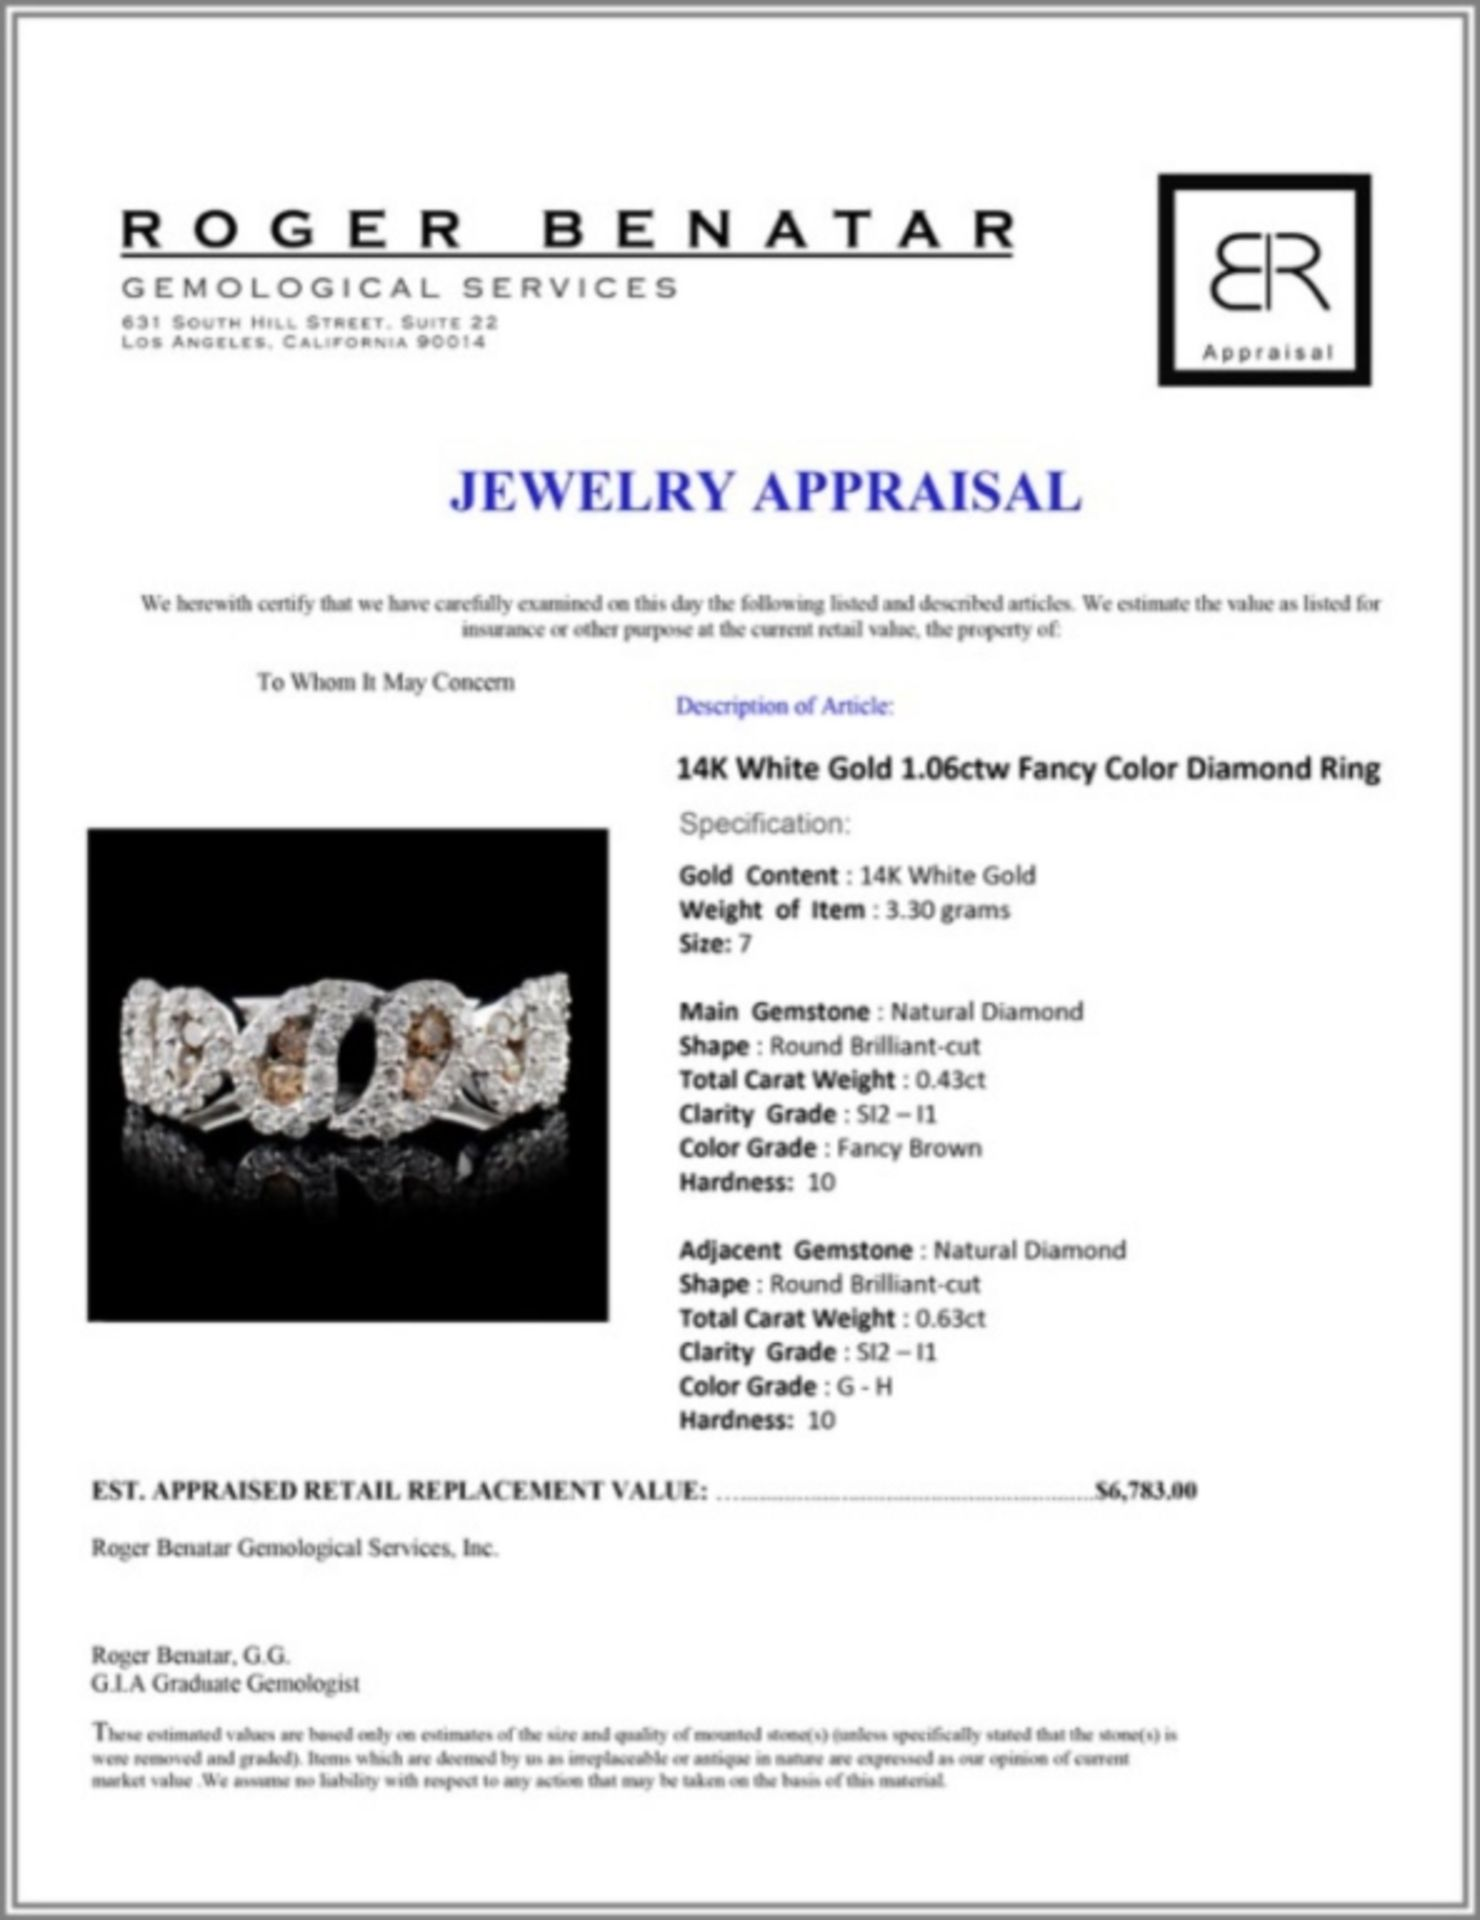 14K White Gold 1.06ctw Fancy Color Diamond Ring - Image 3 of 3